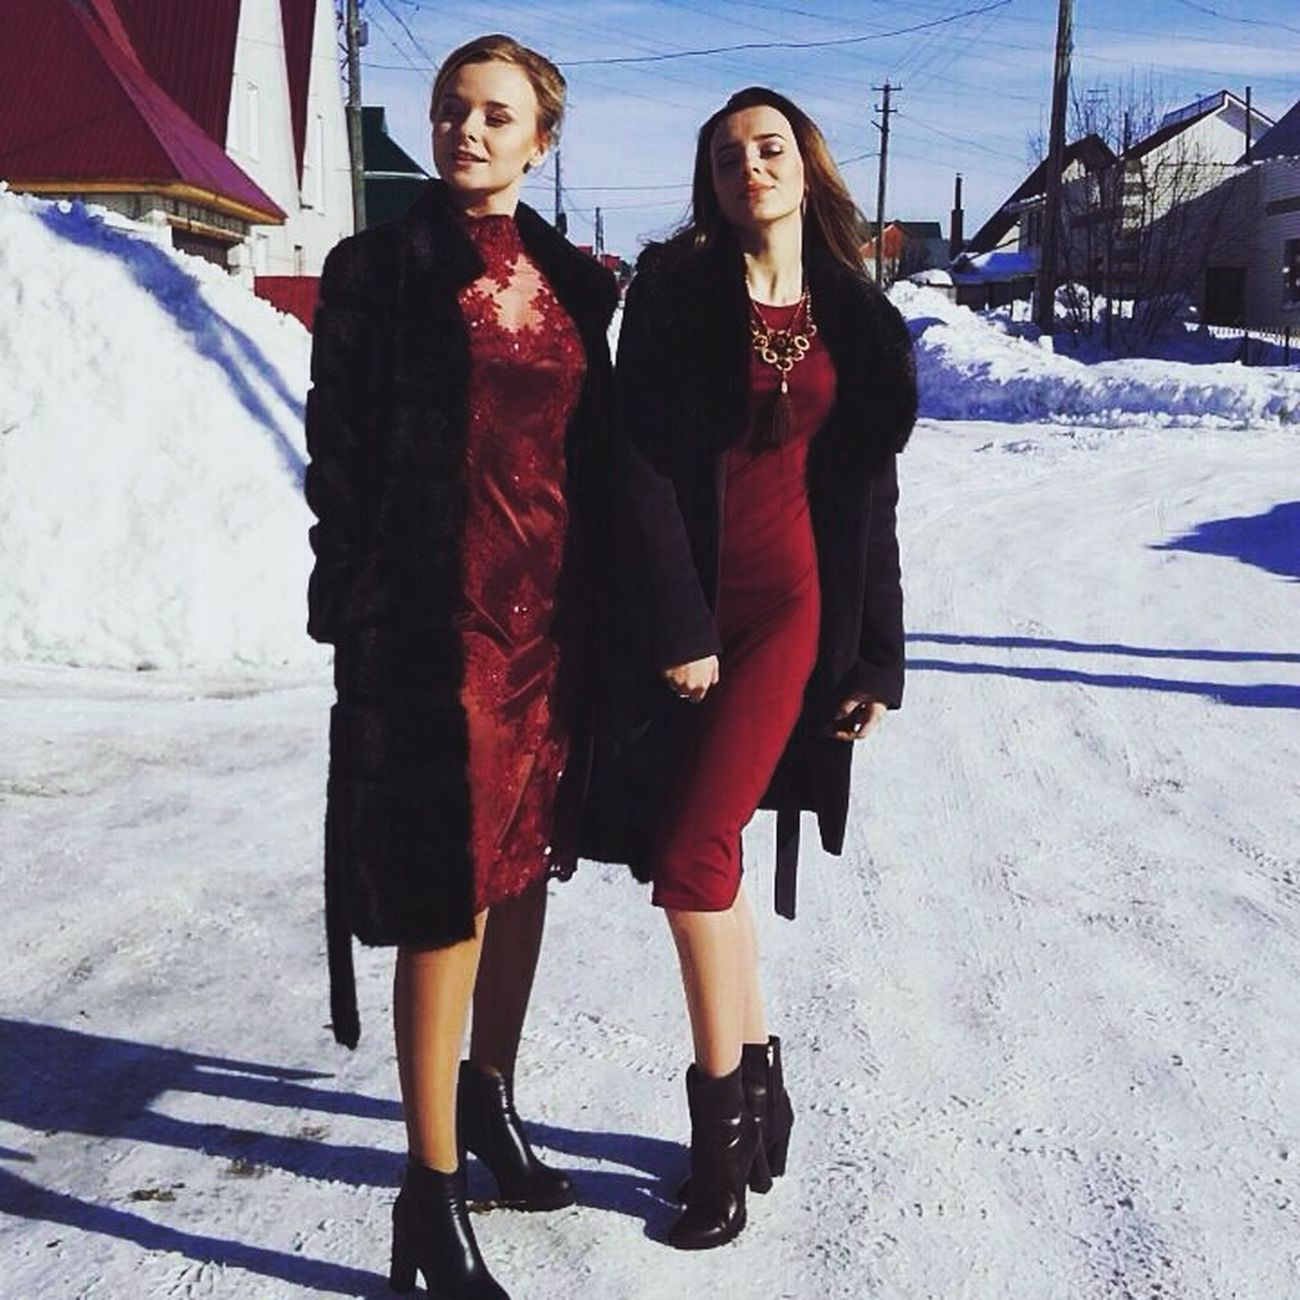 Beauty Women Two People Young Women Snow